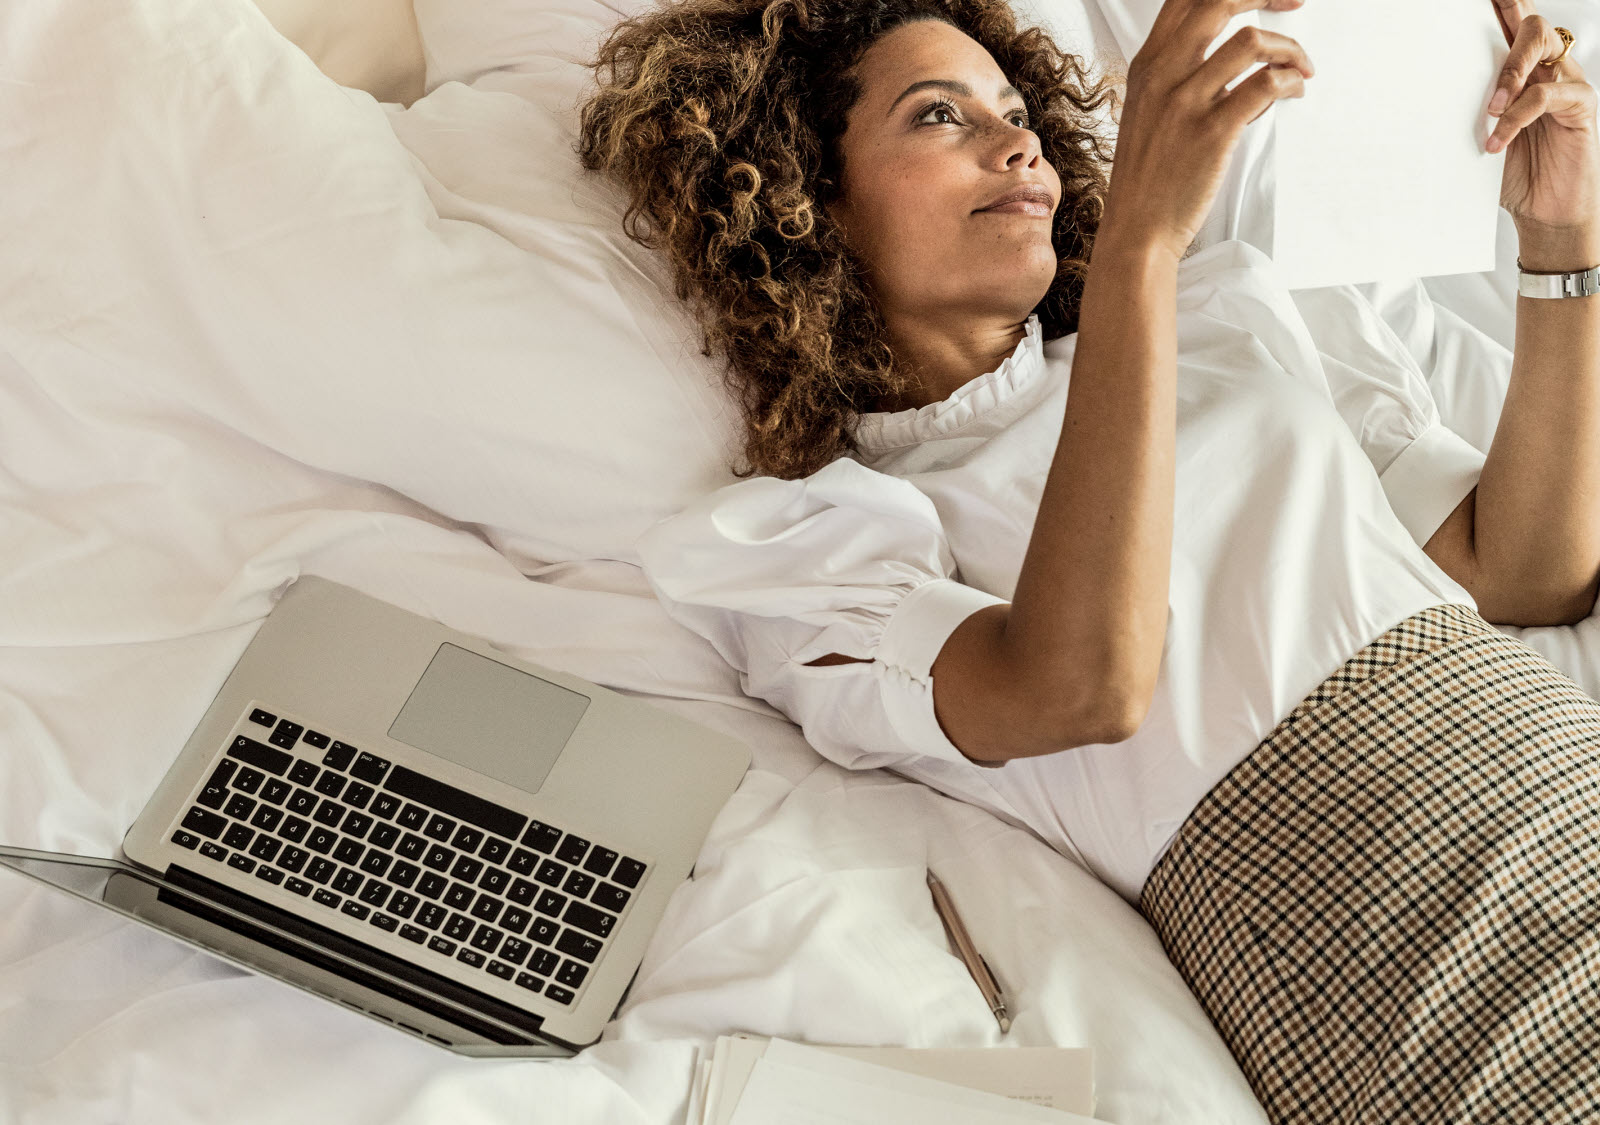 Woman working from bed.